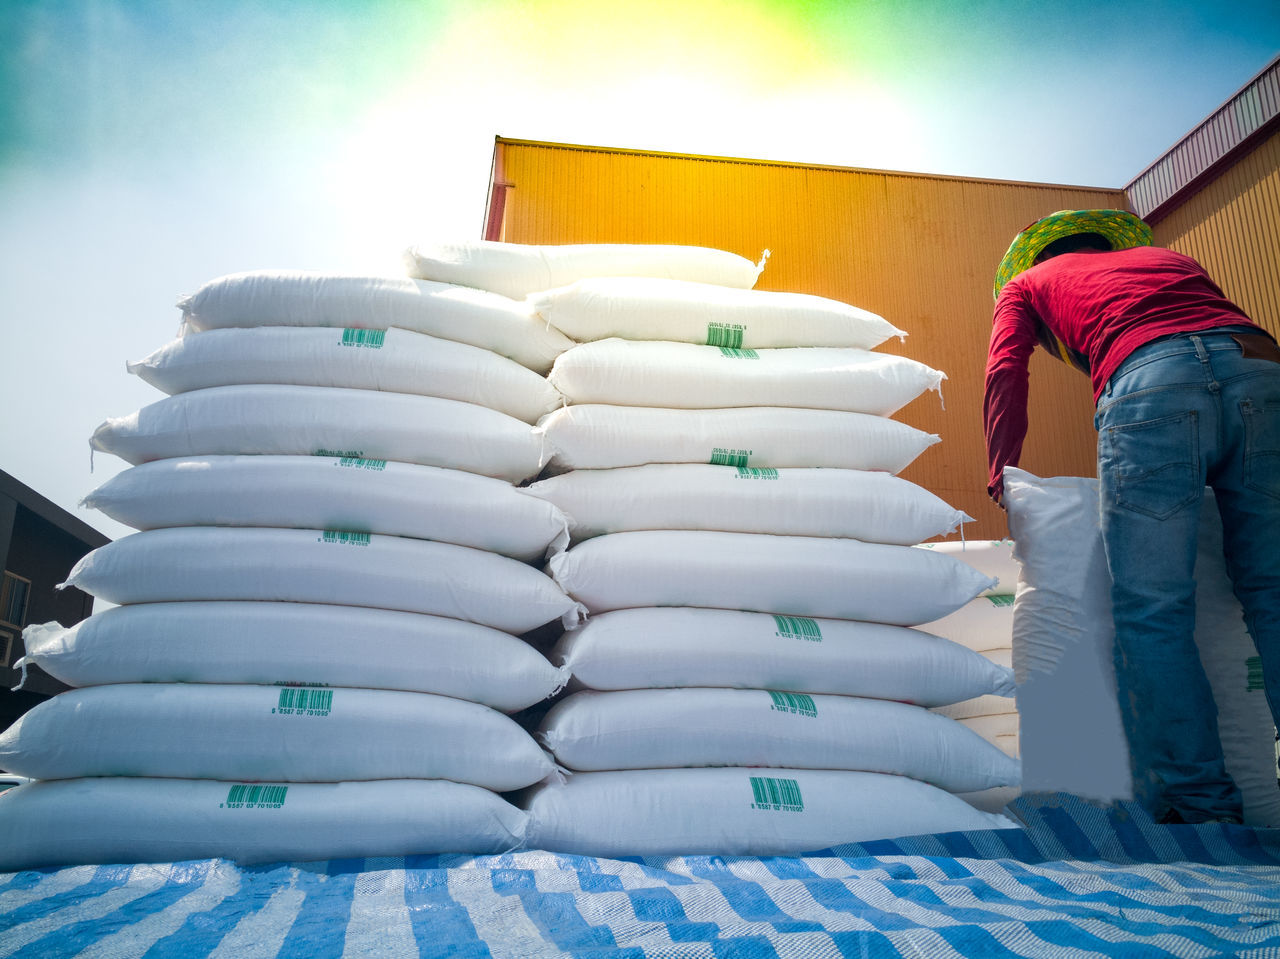 Stacking of sugar bags on truck Distribution Agronomy Bag Export Import Seed Row Tapioca Rice Grain Bulk Trade Warehouse Transportation Truck Wheat White Wholesale Wrapping Automotive Industry Tapioca Outdoors Shipping Cargo Container Loading And Unloading Handling